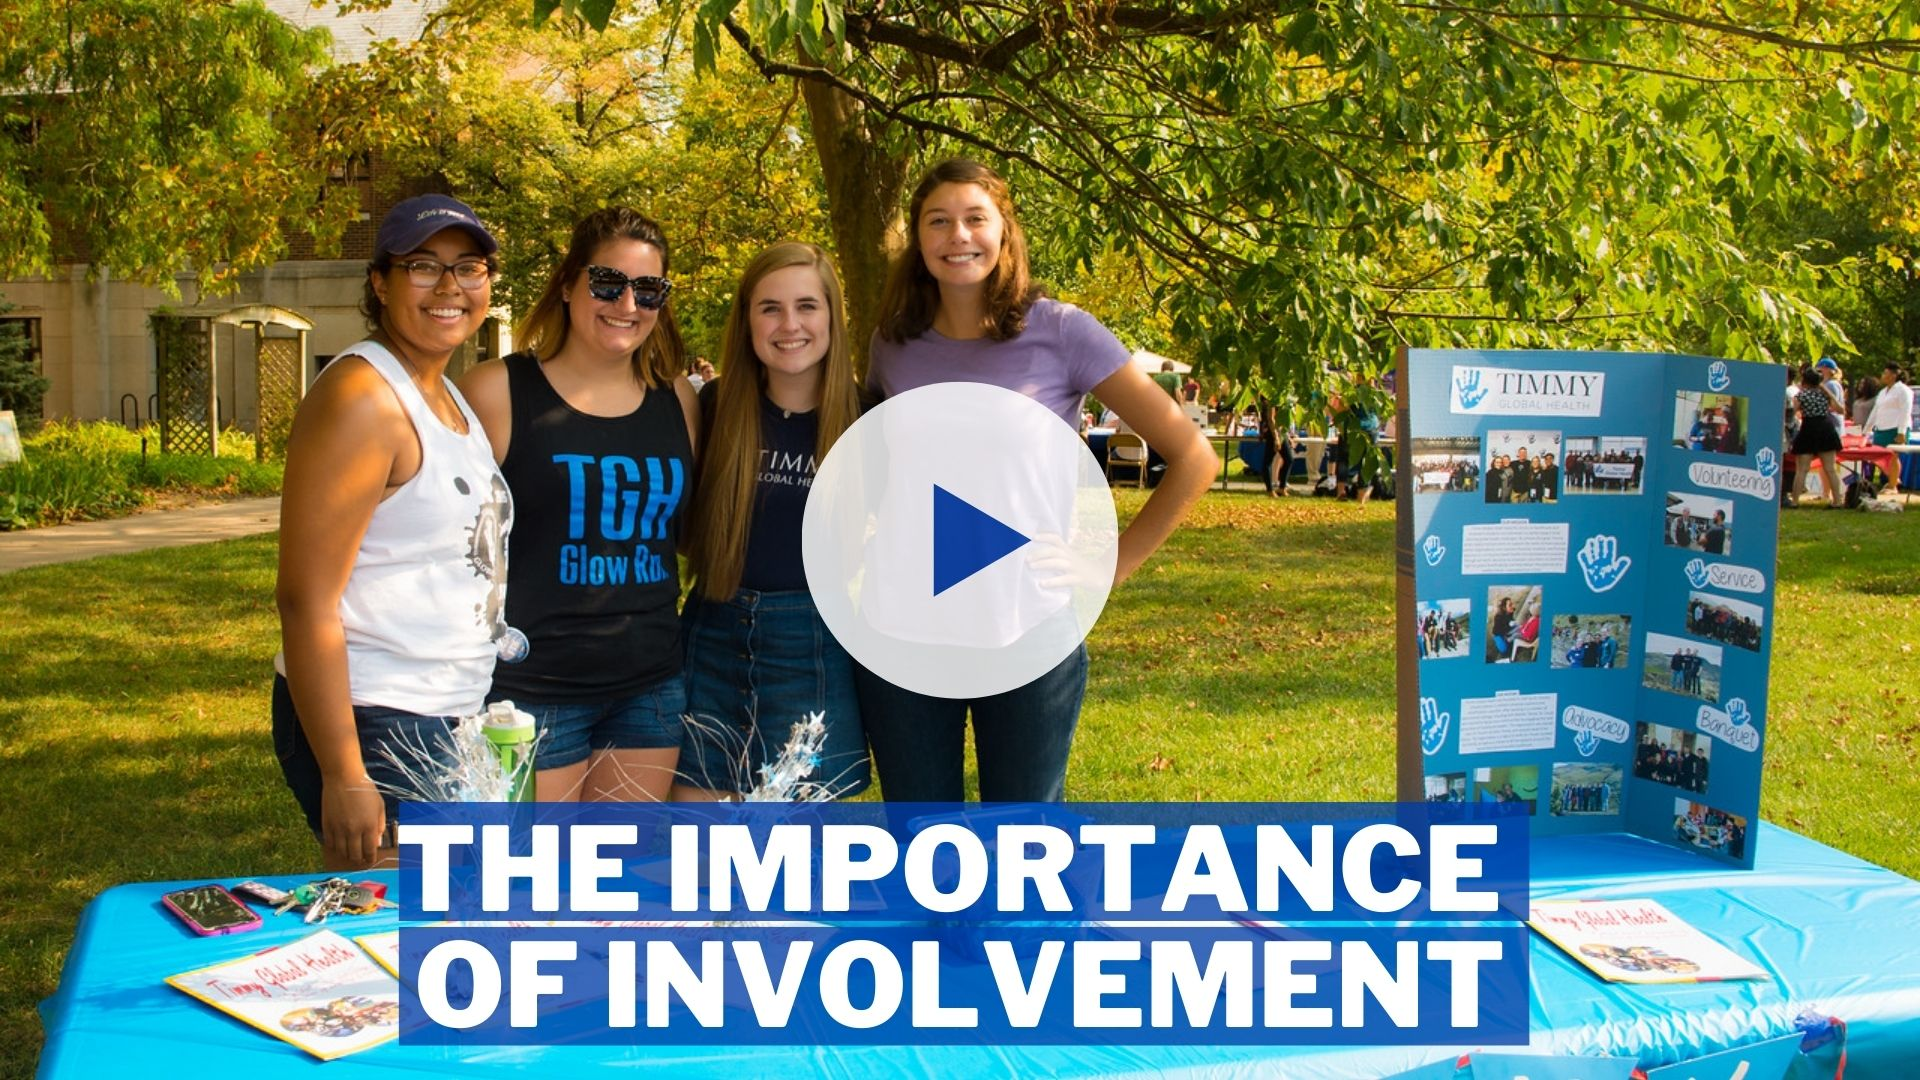 The Importance of Involvement